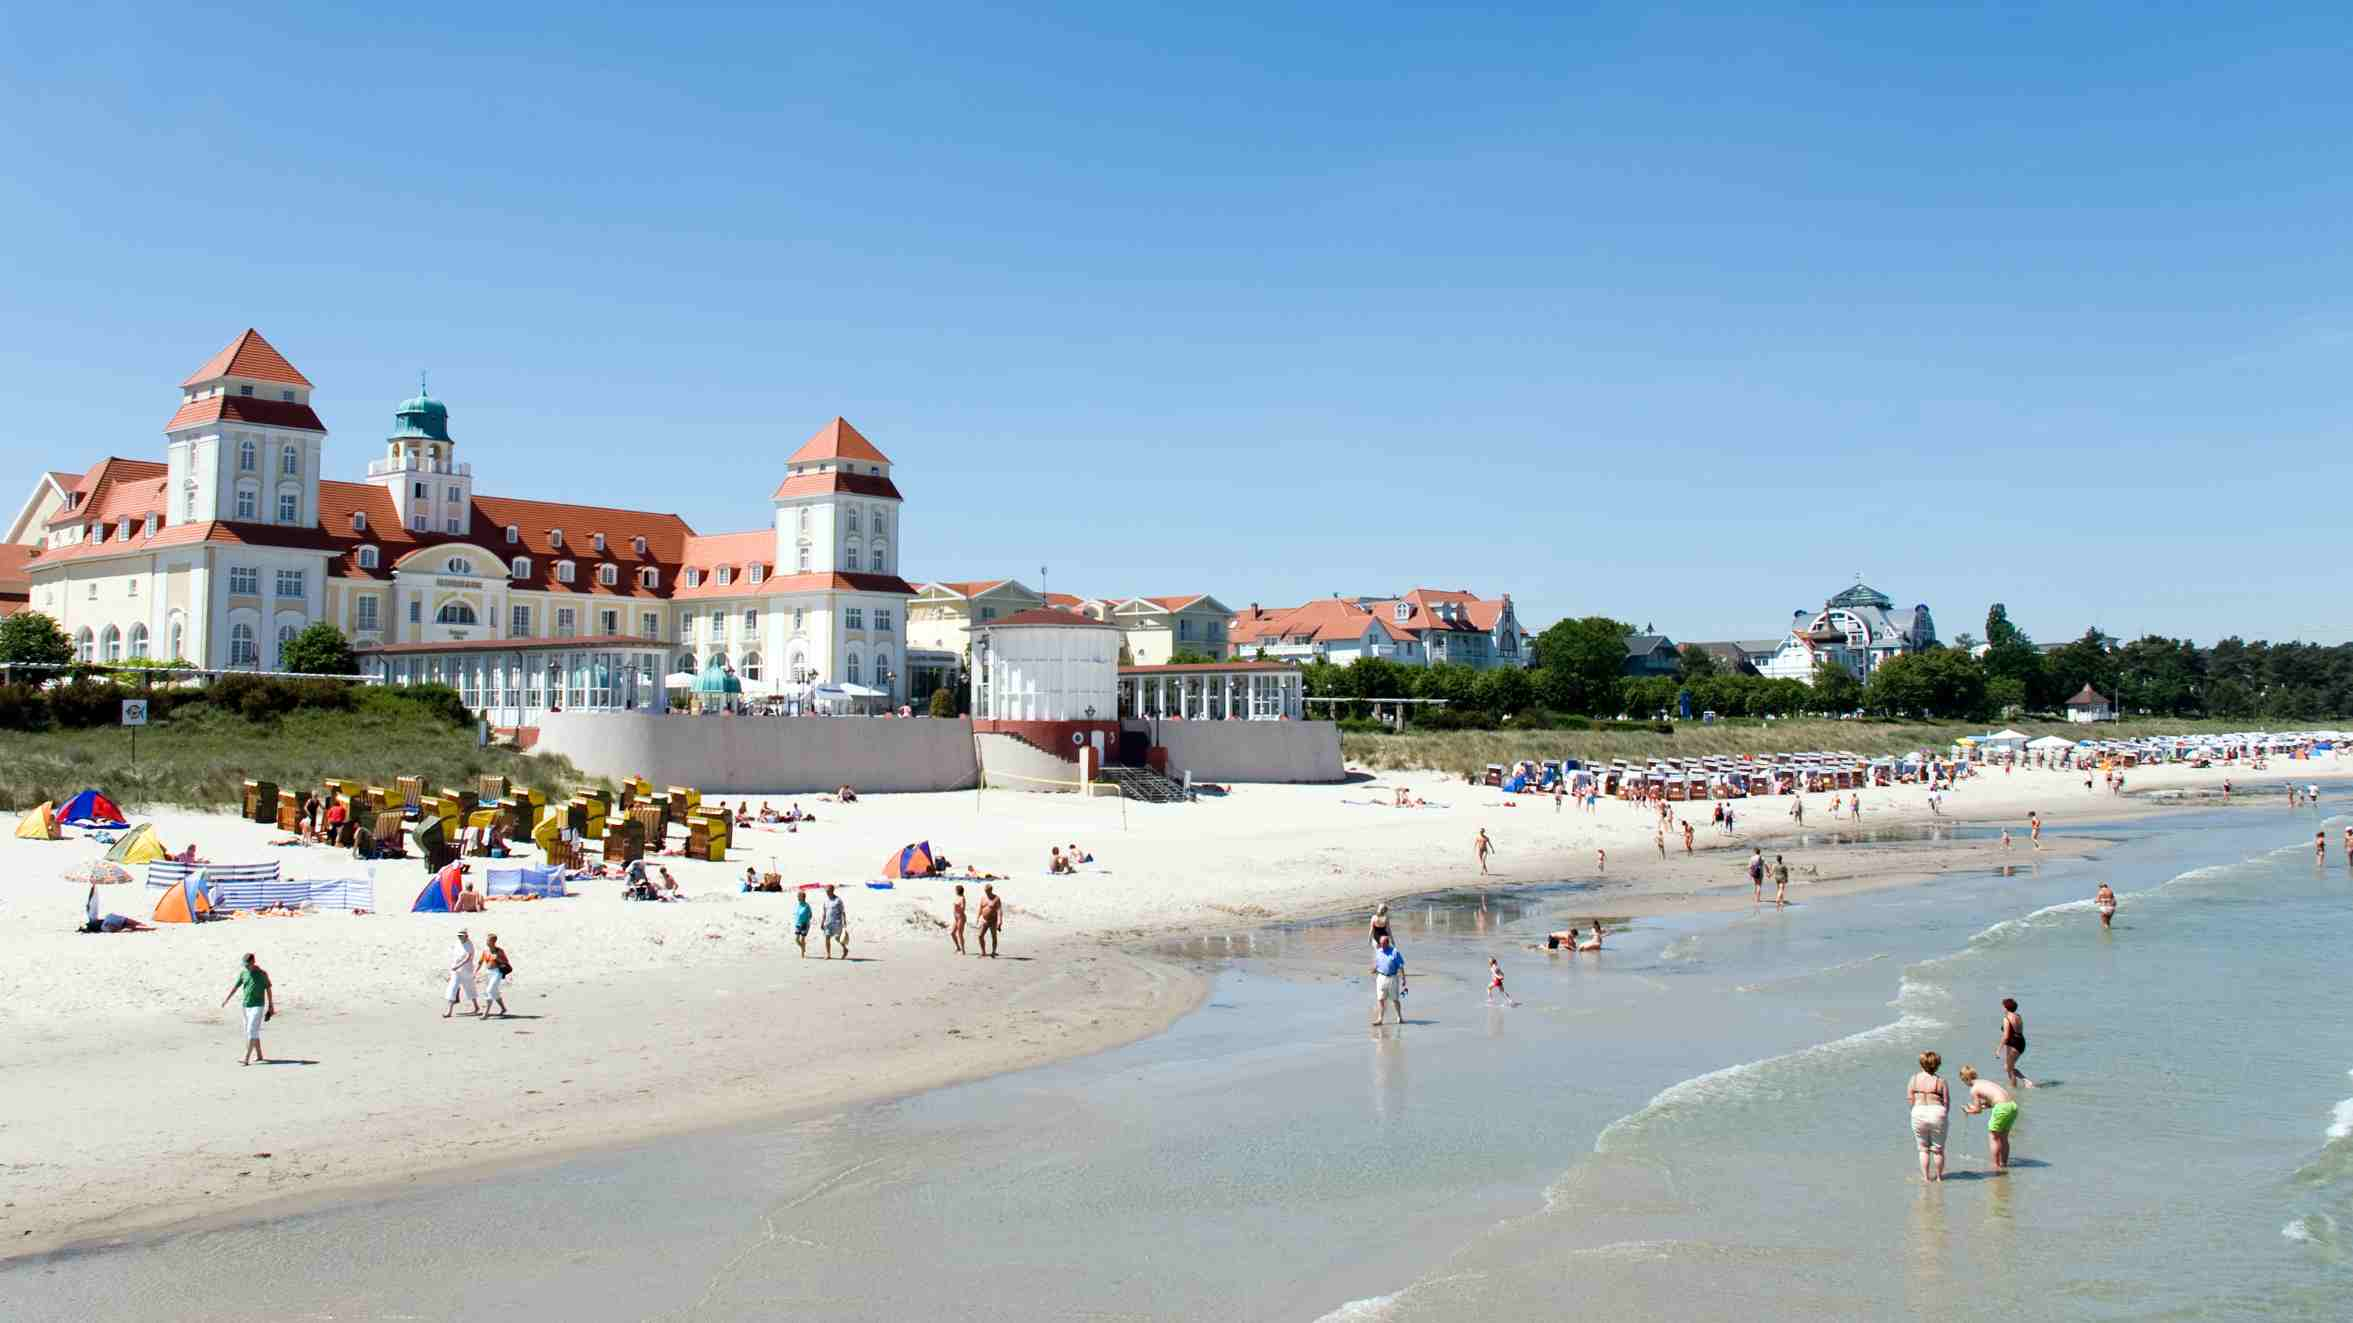 Beaches in Germany